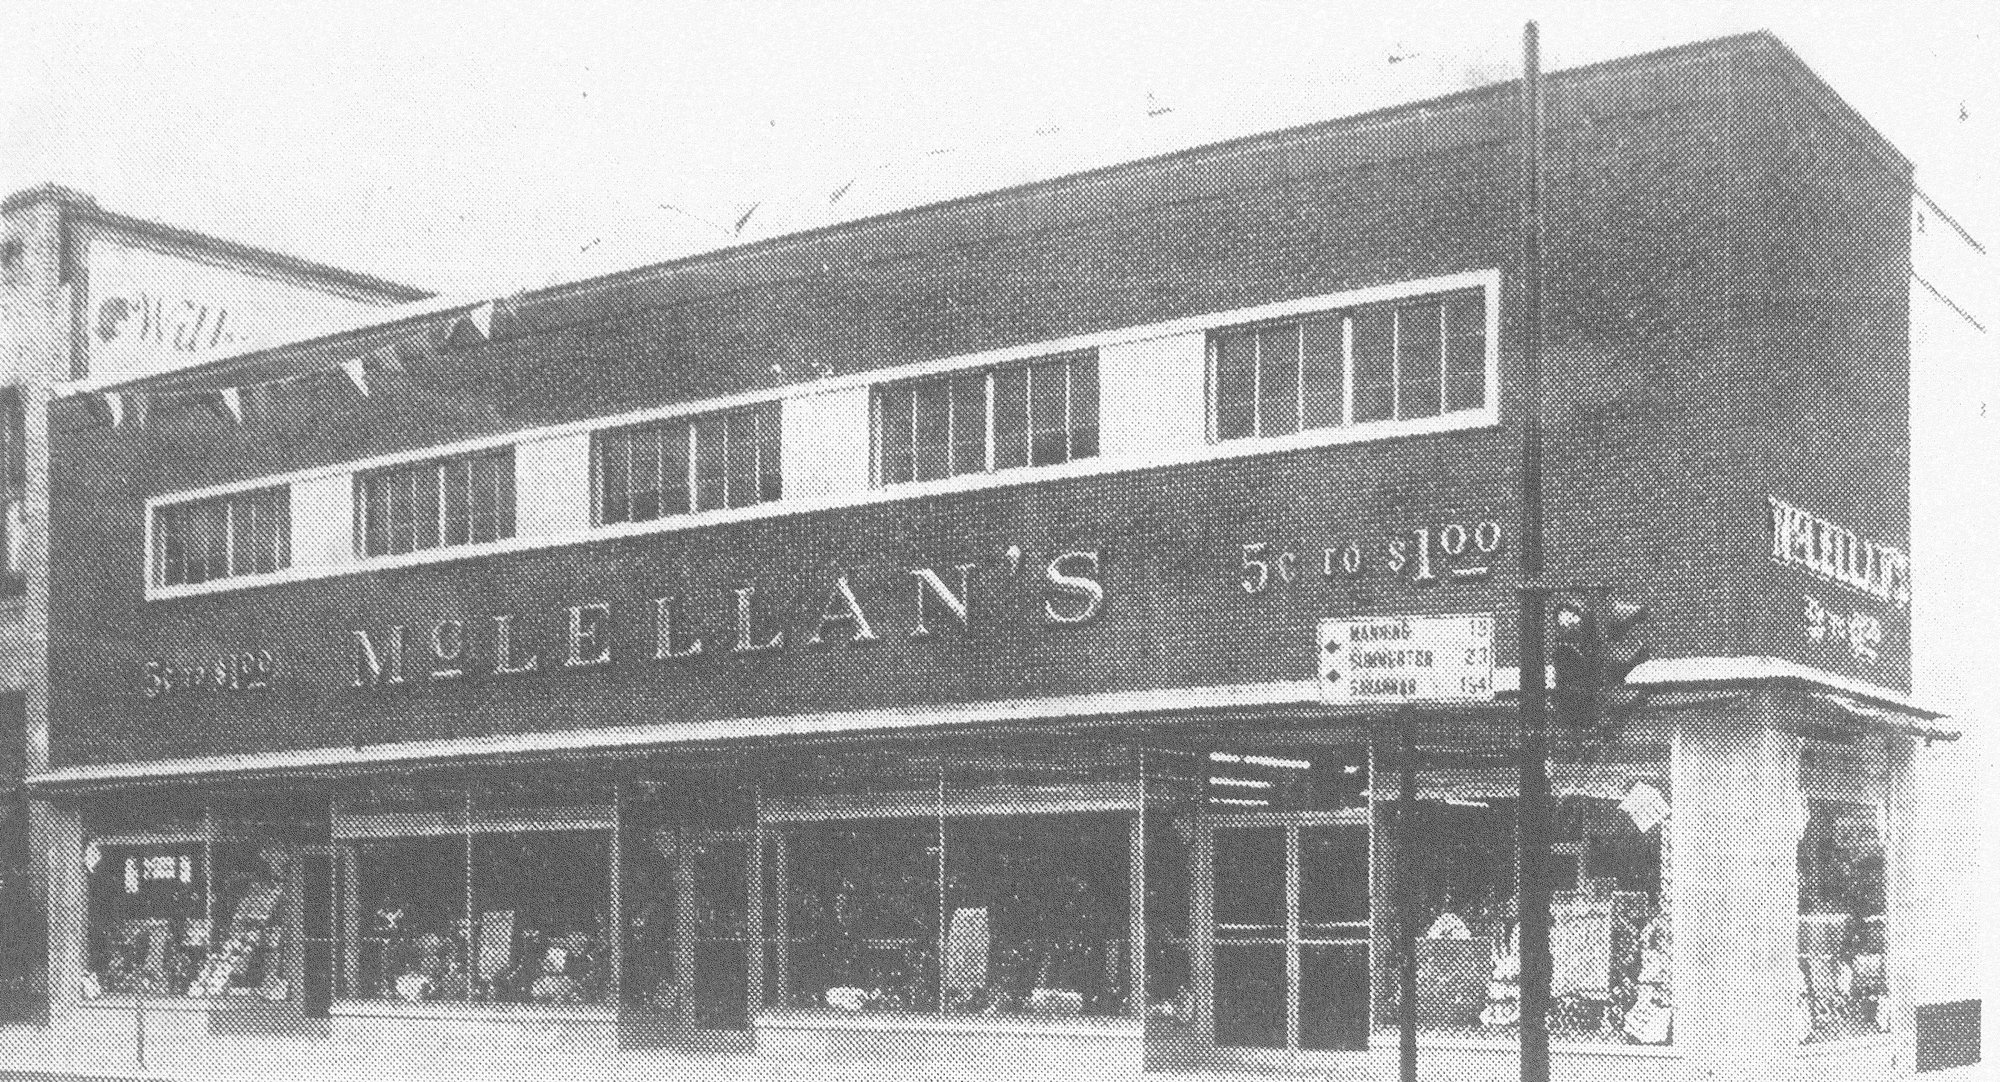 McLellan's 5 cents to $1 store is seen decked out during its grand opening after renovation in 1953. The modern store was completely air conditioned and arranged for customer convenience. Store officials agreed that the opening was one of the best ever in the company's history.